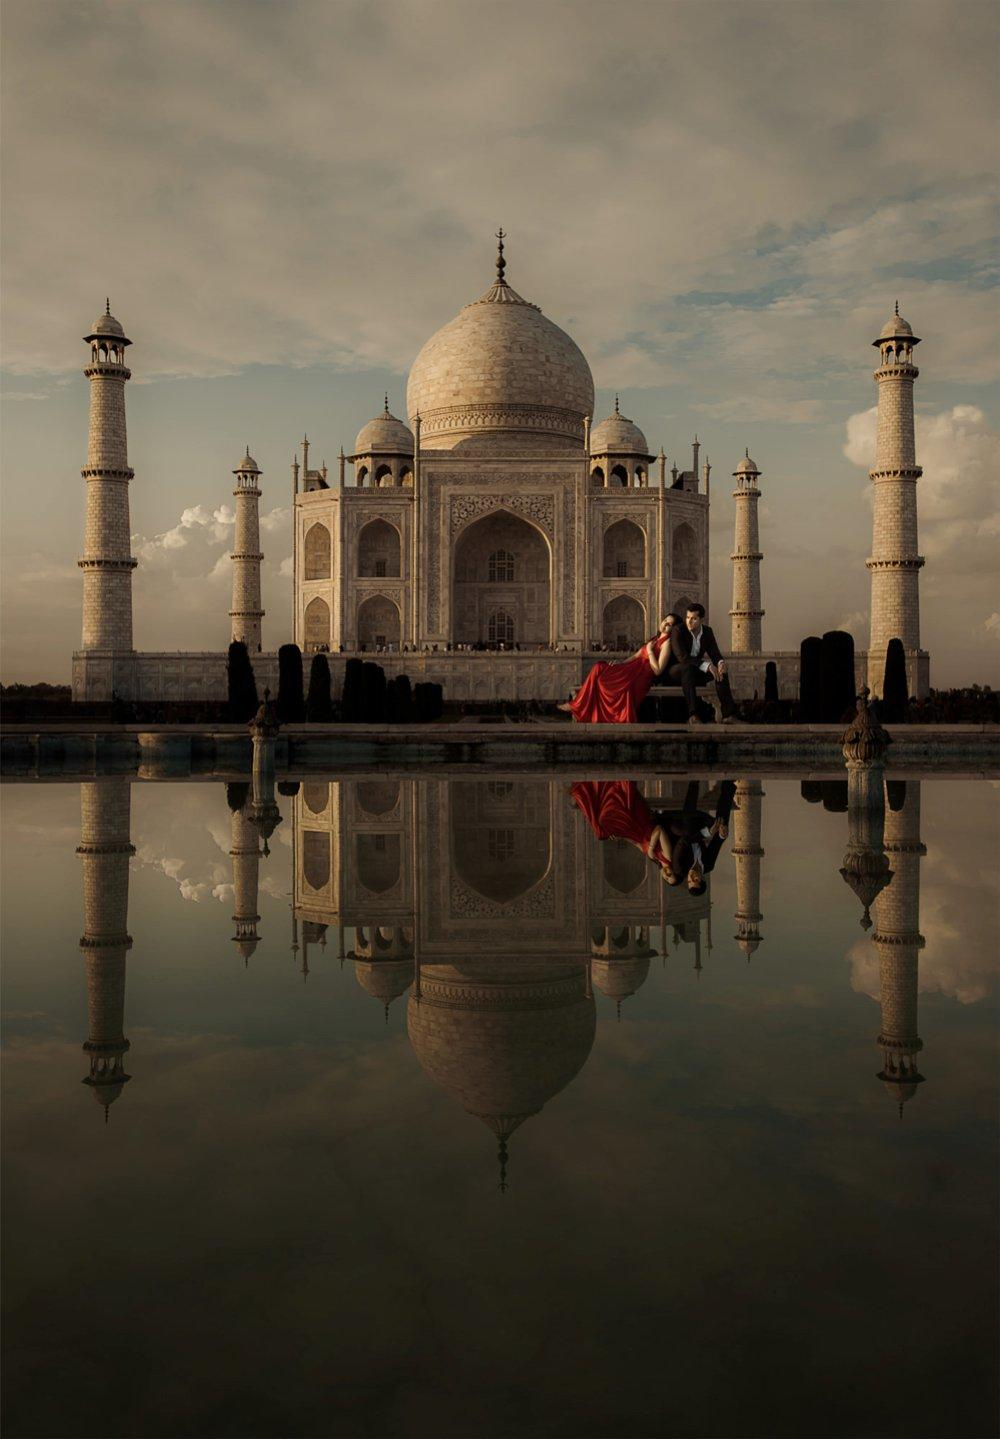 A couple posing in front of the Taj Mahal in India